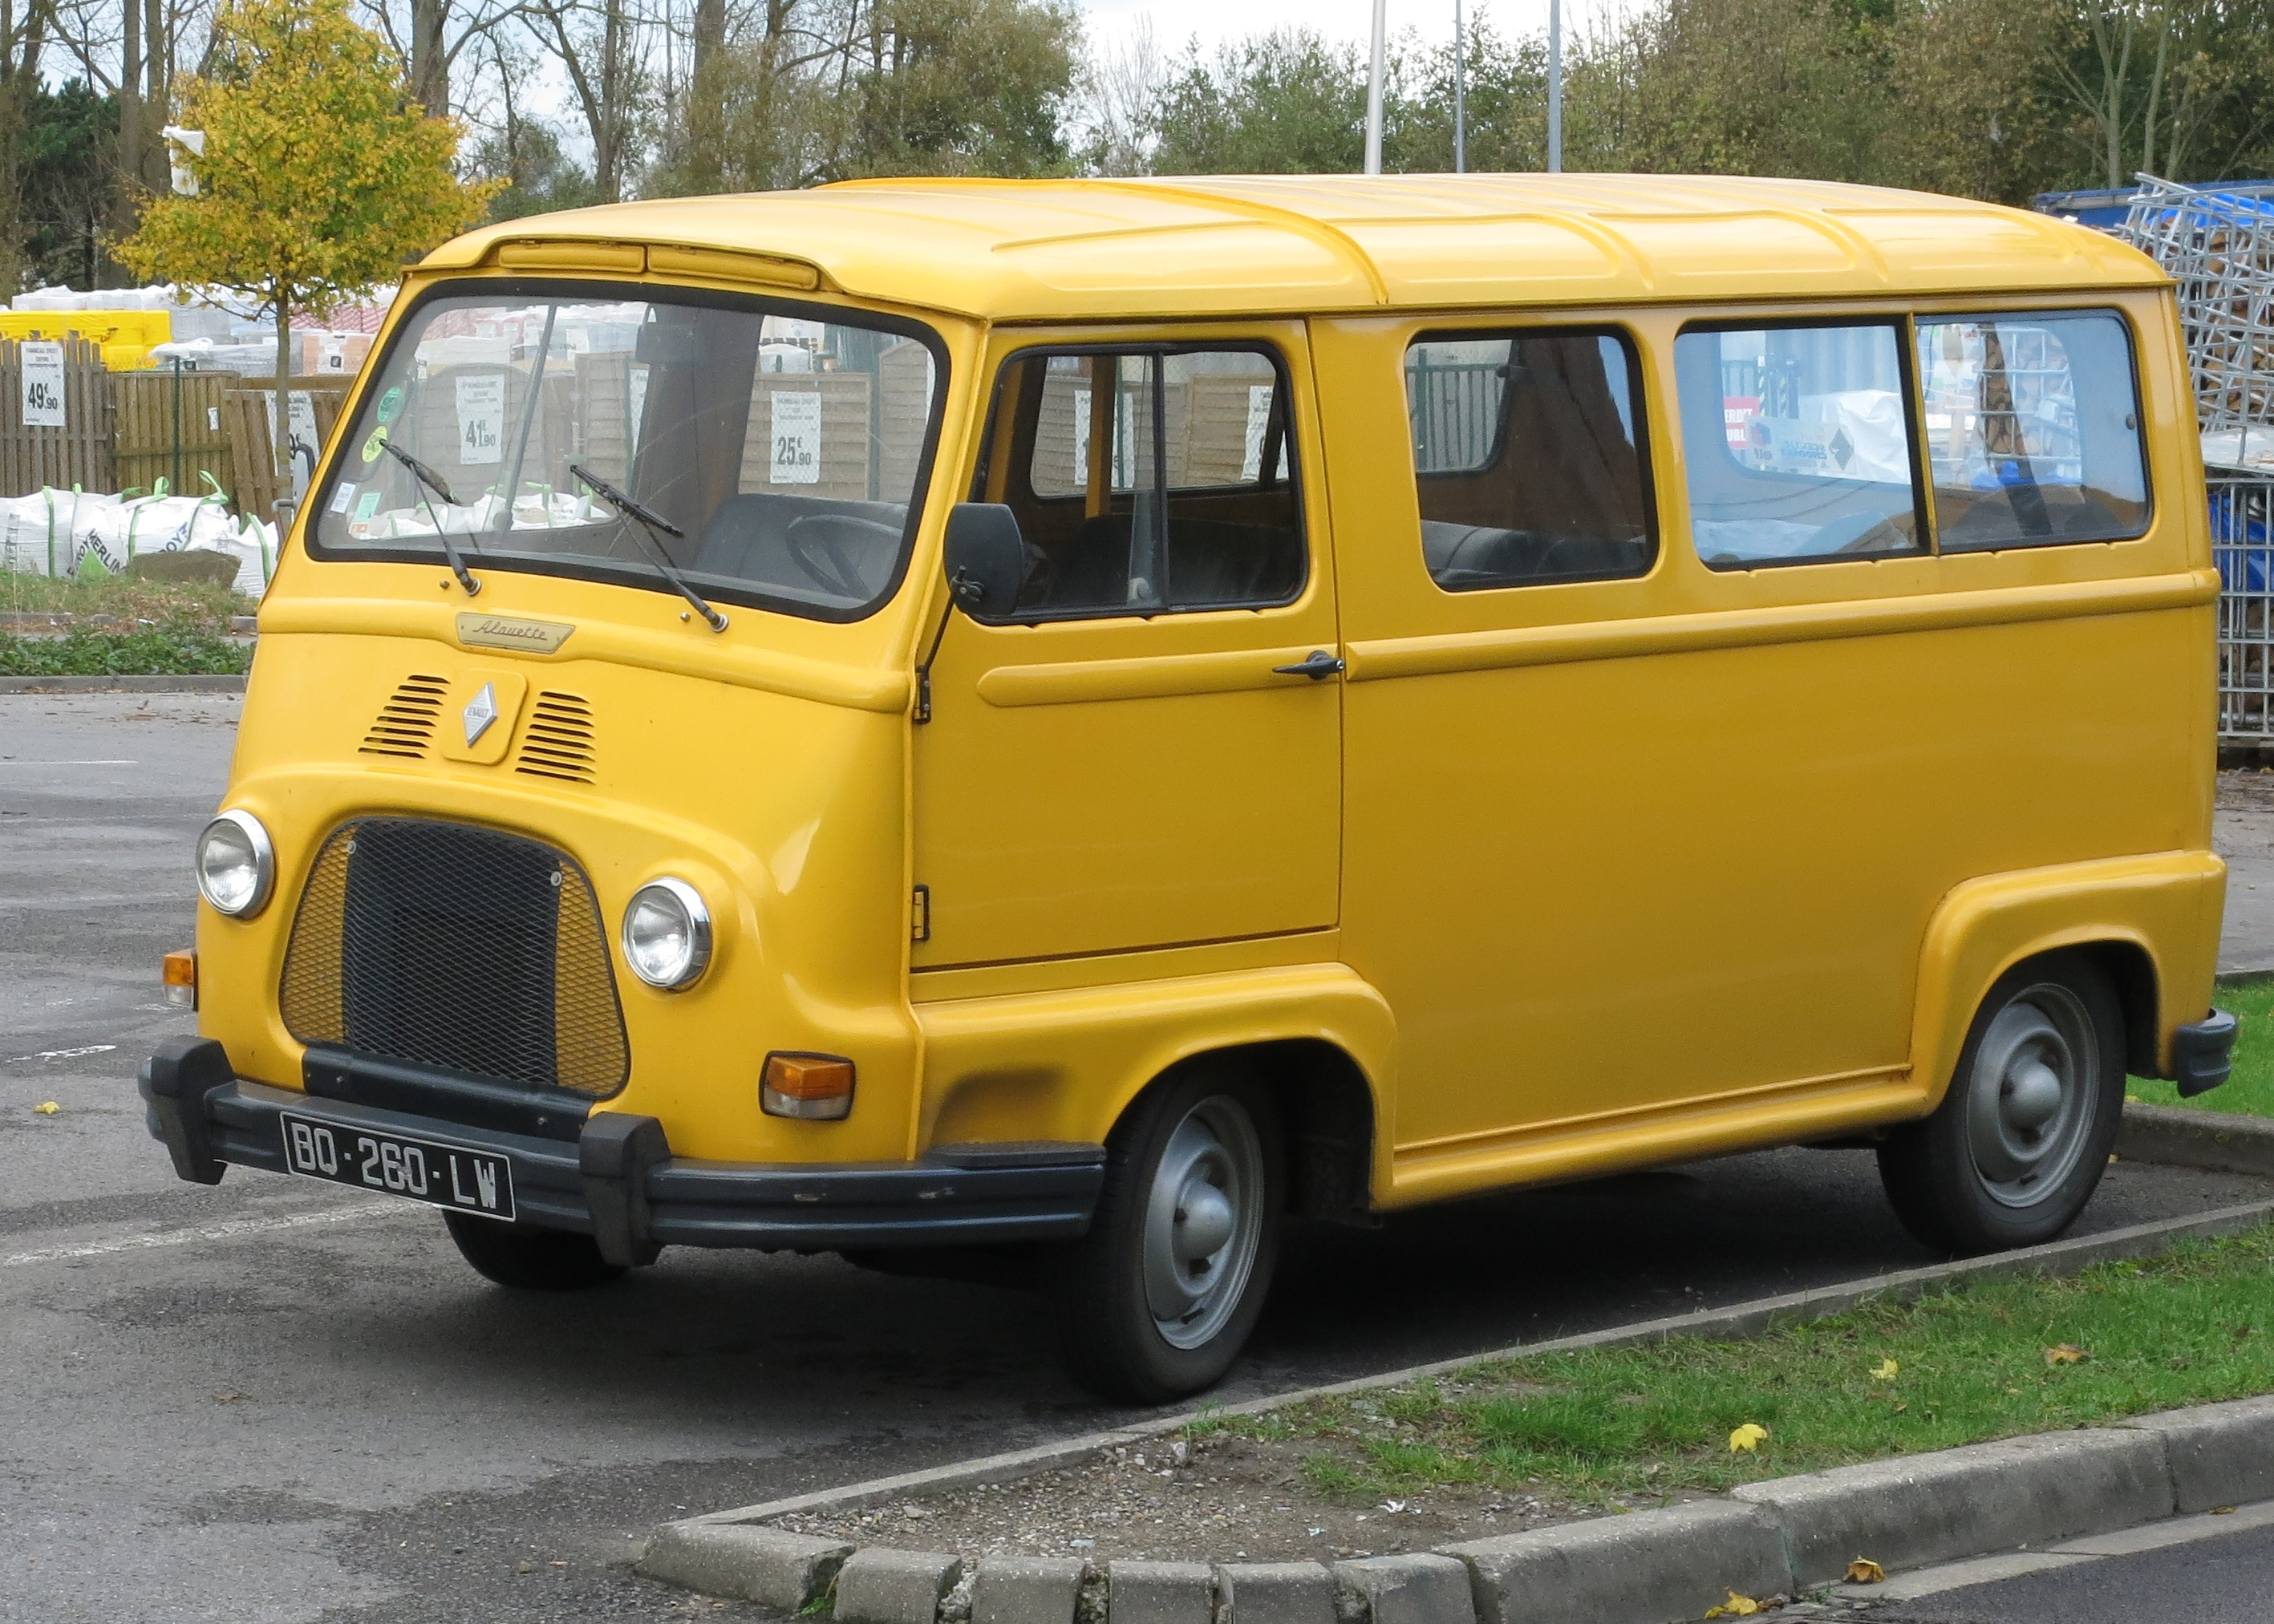 file renault alouette ca 1965 in dunkerque 2014 jpg wikimedia commons. Black Bedroom Furniture Sets. Home Design Ideas